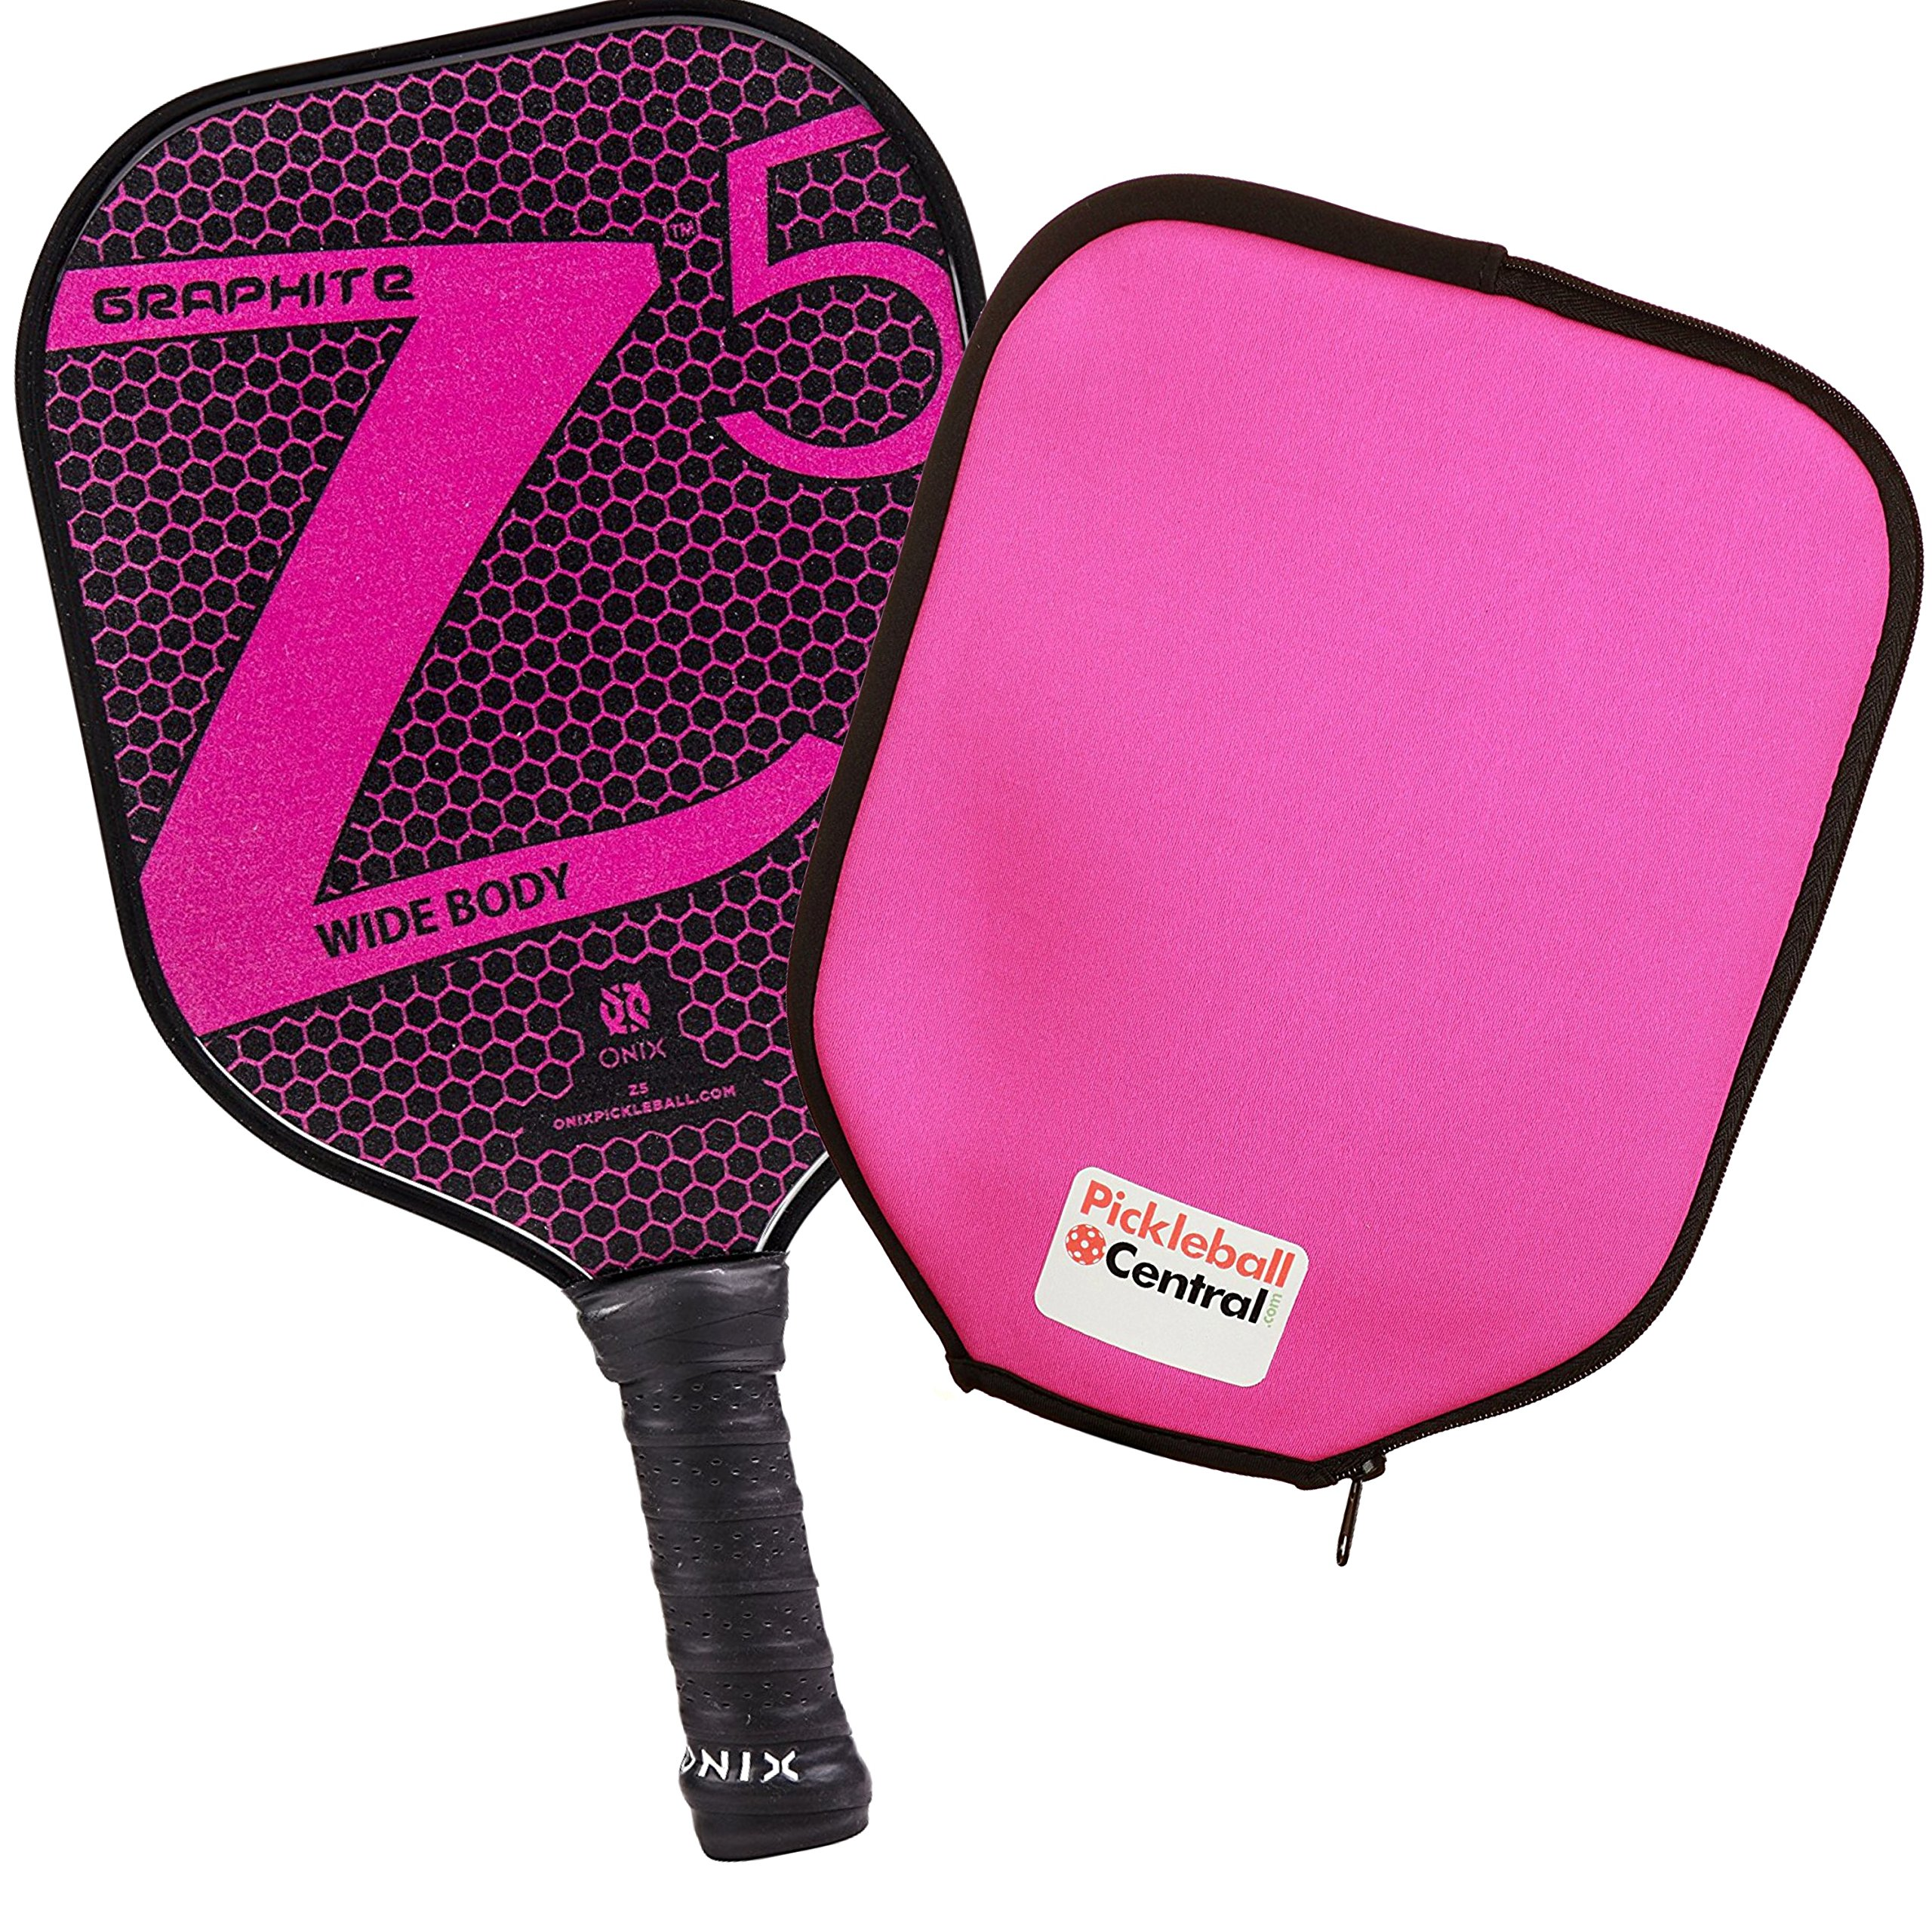 Onix Z5 Graphite Pickleball Paddle and Paddle Cover -55S6